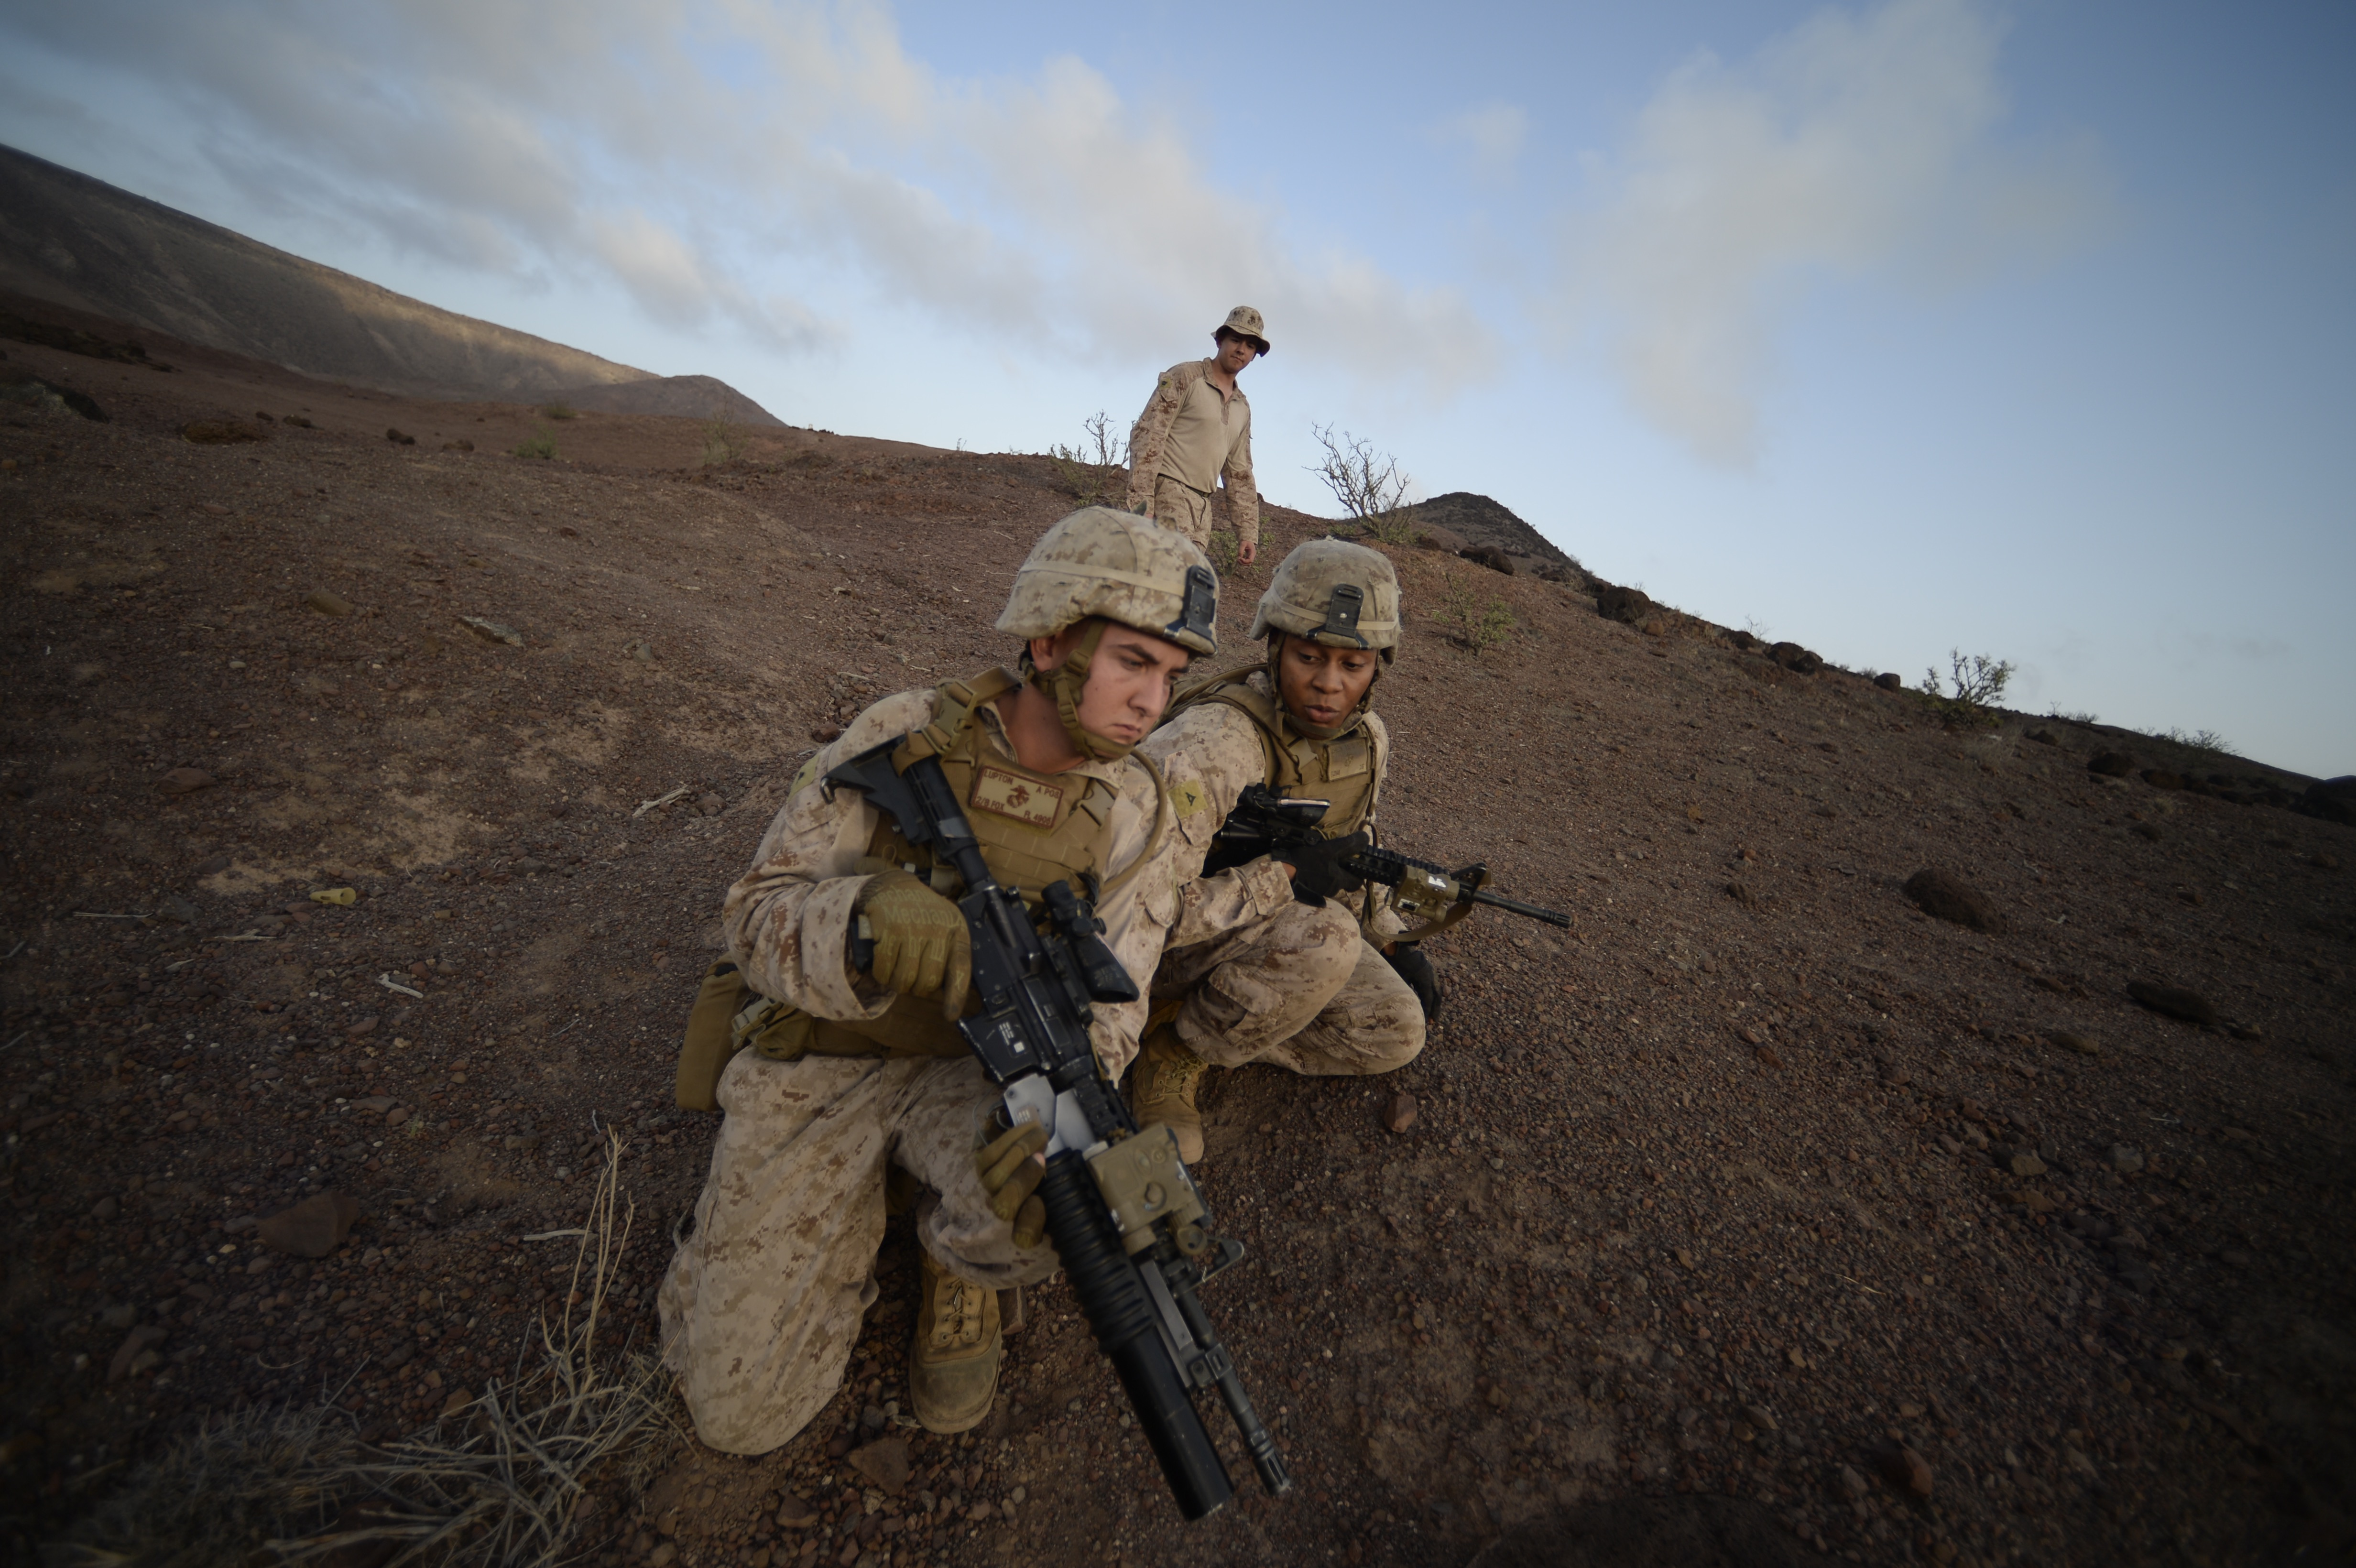 ARTA, Djibouti – U.S. Marine Corps Lance Cpls. Jonathan Lupton and Quintin Johnson, Special-Purpose Marine Air-Ground Task Force Crisis Response-Africa (SPMAGTF-CR-AF), practice small arms fire team training before the live fire range drill, Oct. 5, 2016, at Arta, Djibouti. Assigned to Combined Joint Task Force-Horn of Africa, SPMAGTF-CR-AF completed team level range drills to continue sustainment of core skills and build from individual skill levels. The next level of training will consist of squad training. (U.S. Air Force photo by Staff Sgt. Rion Ehrman)